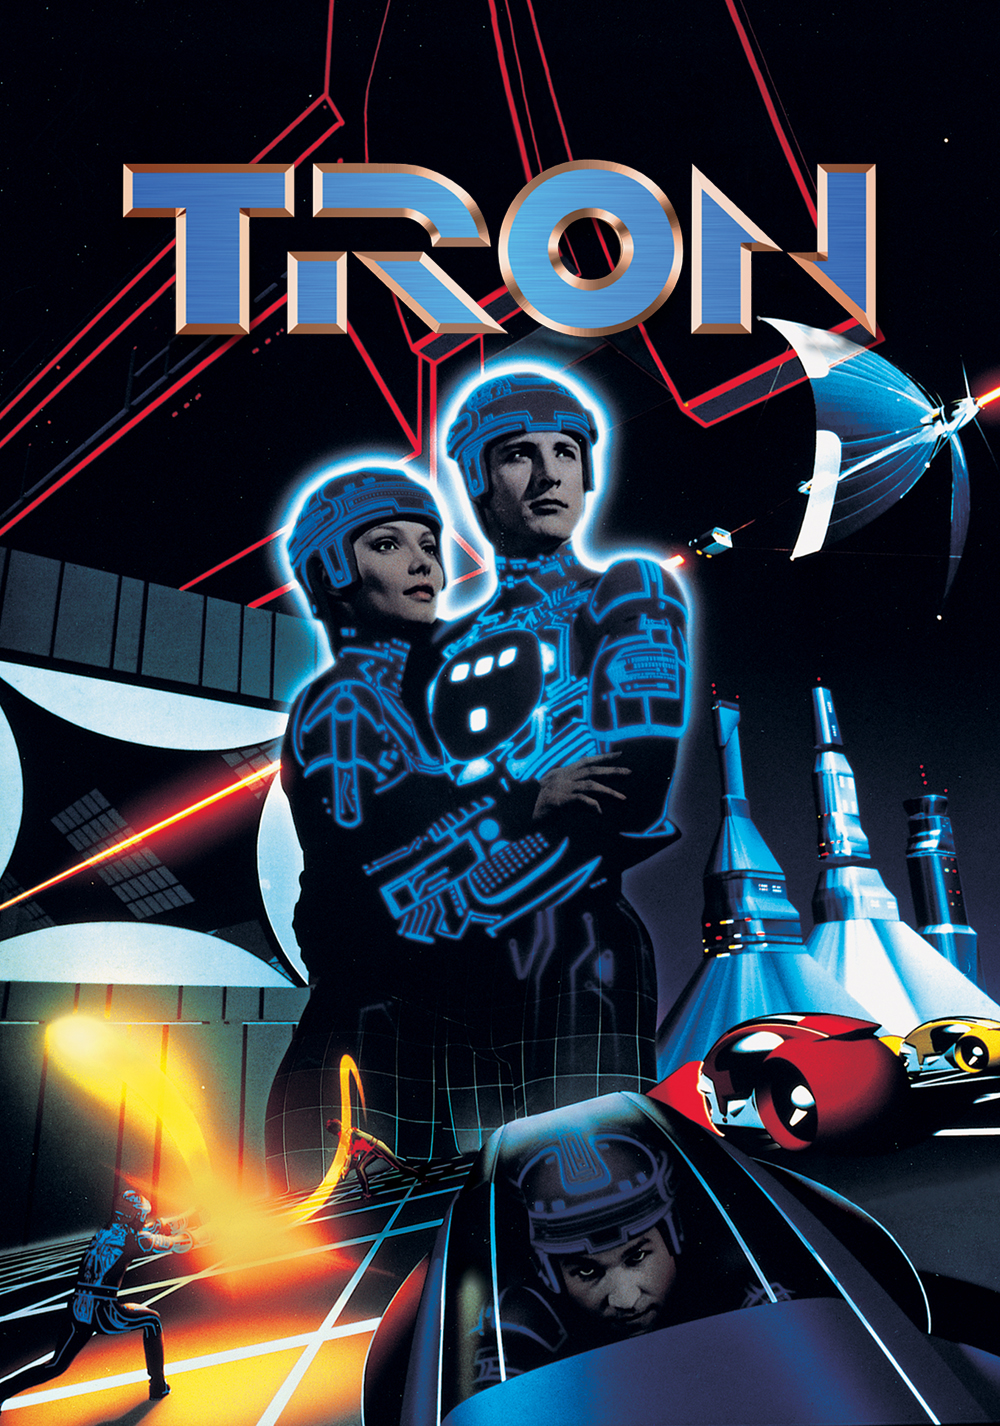 Tron_Textless_Poster